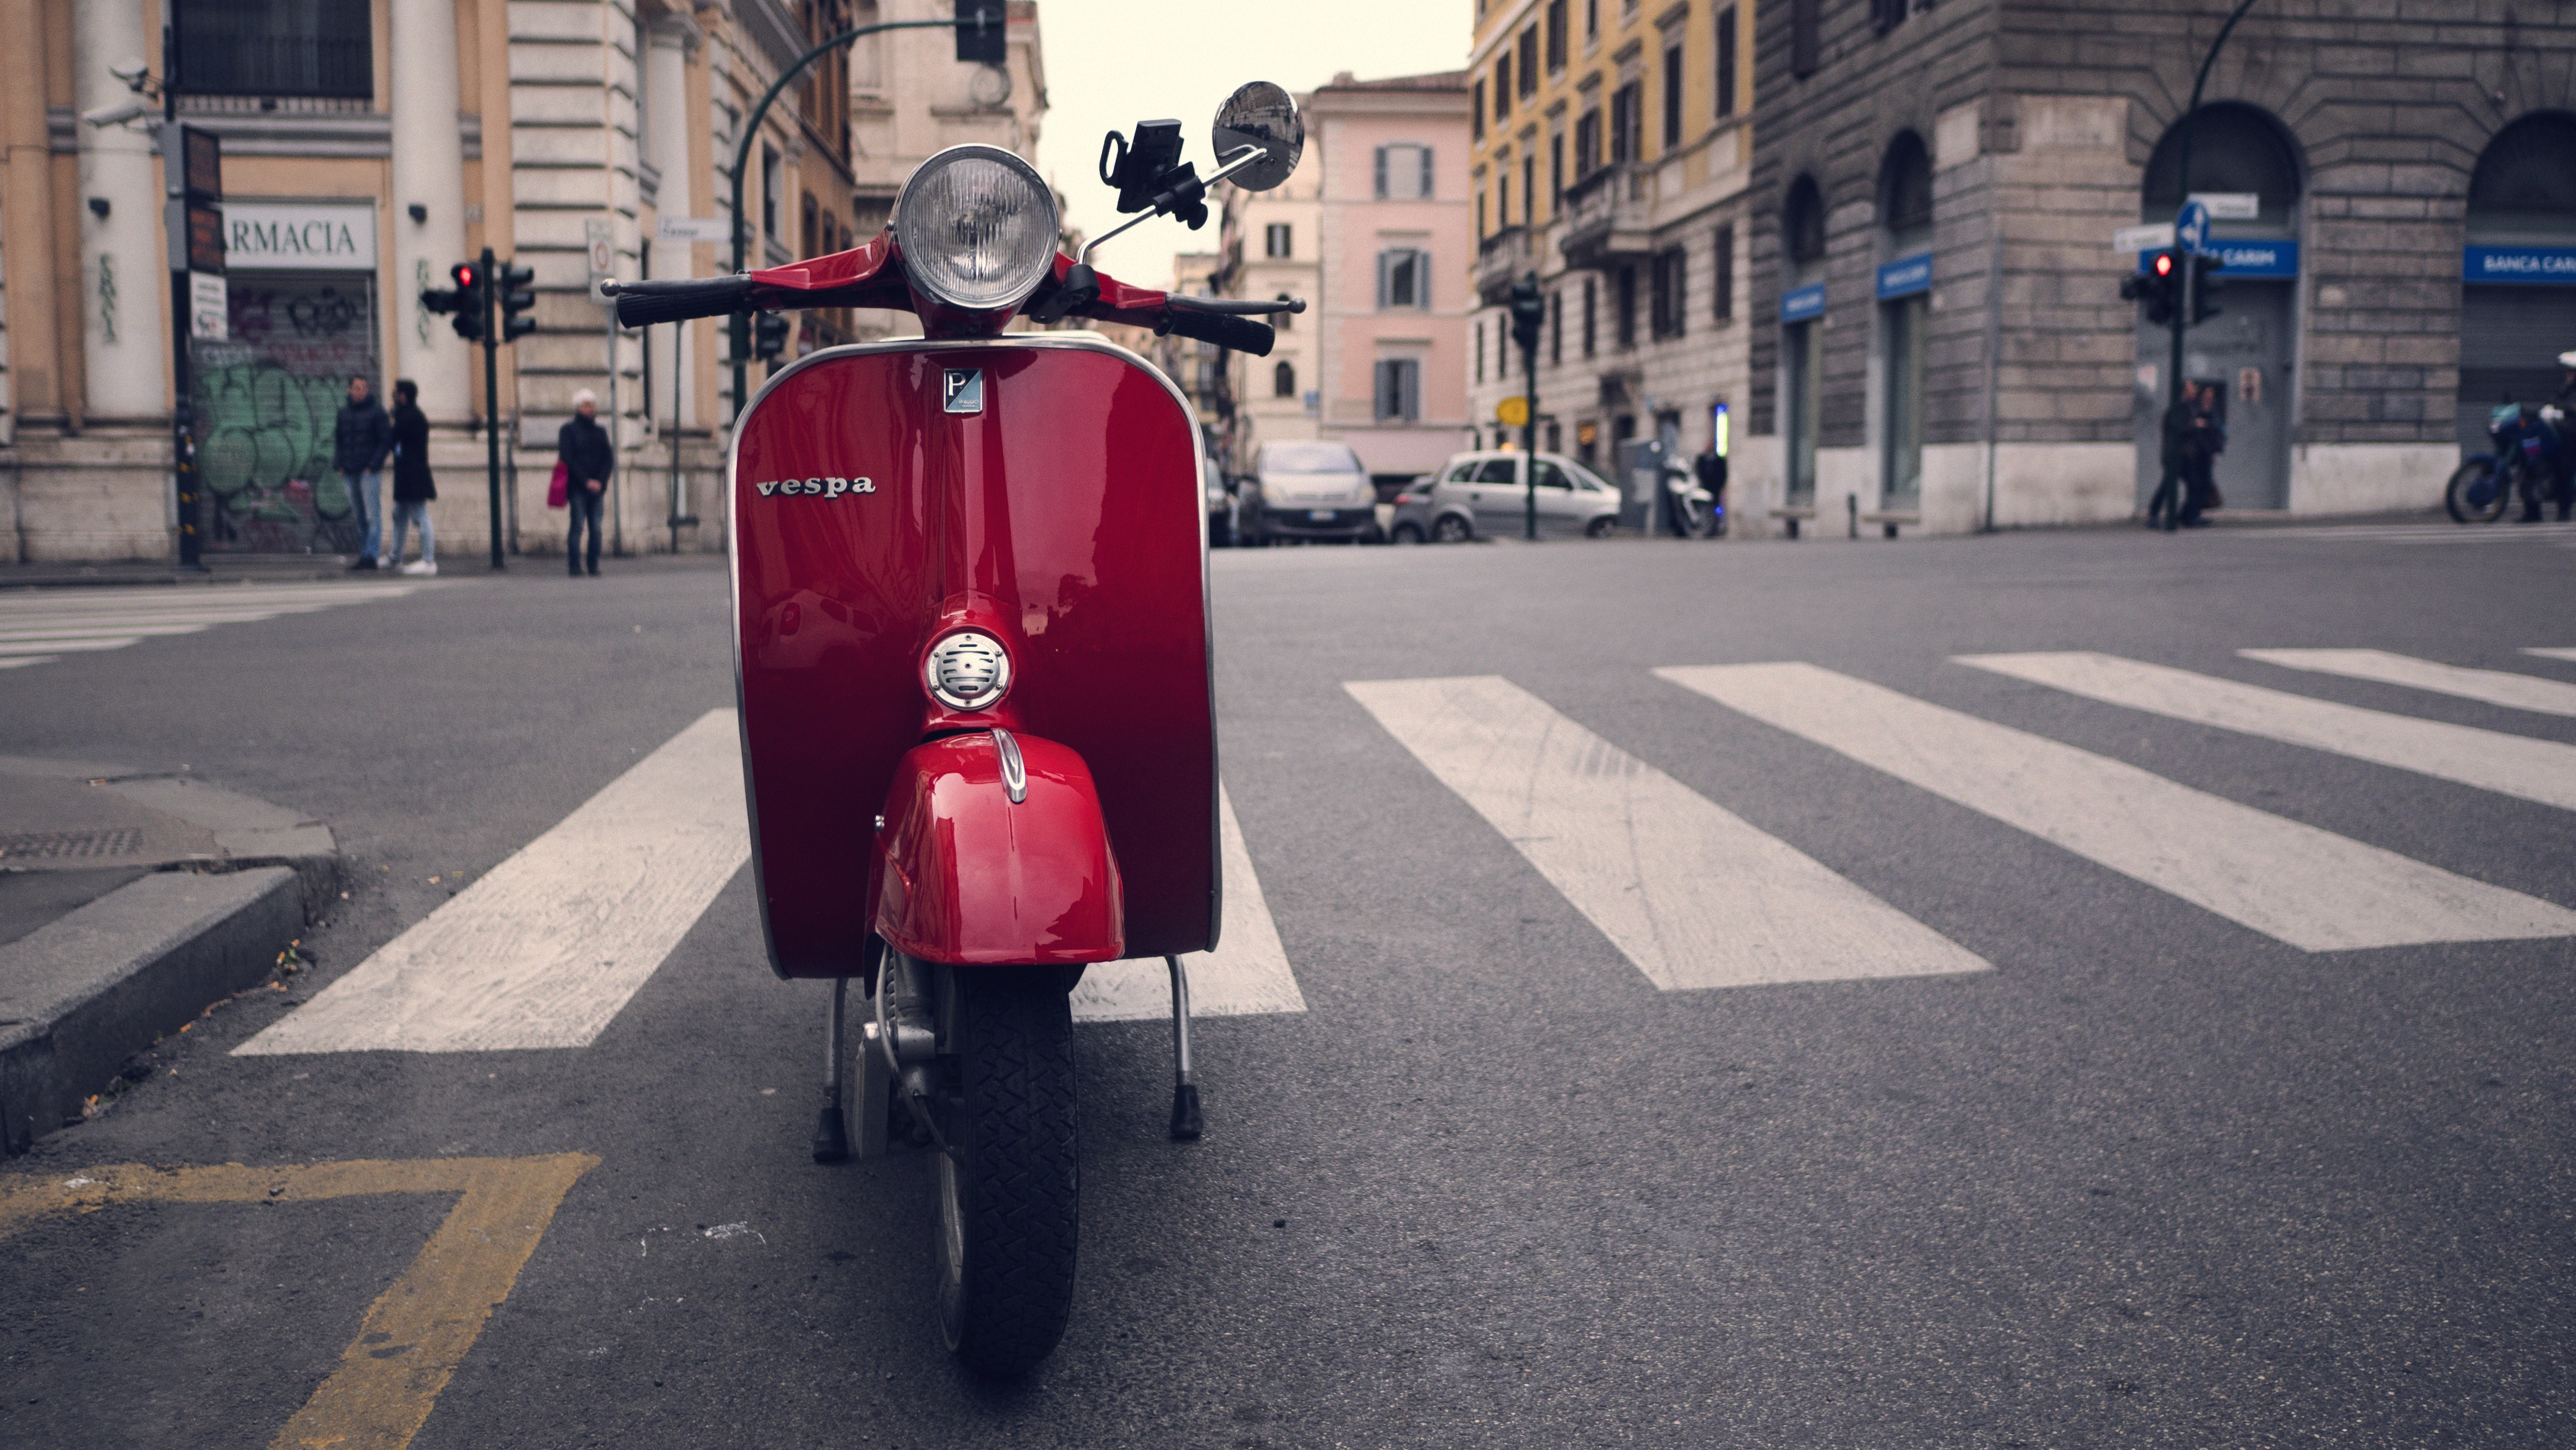 Red vespa scooter parked on a city street in Rome